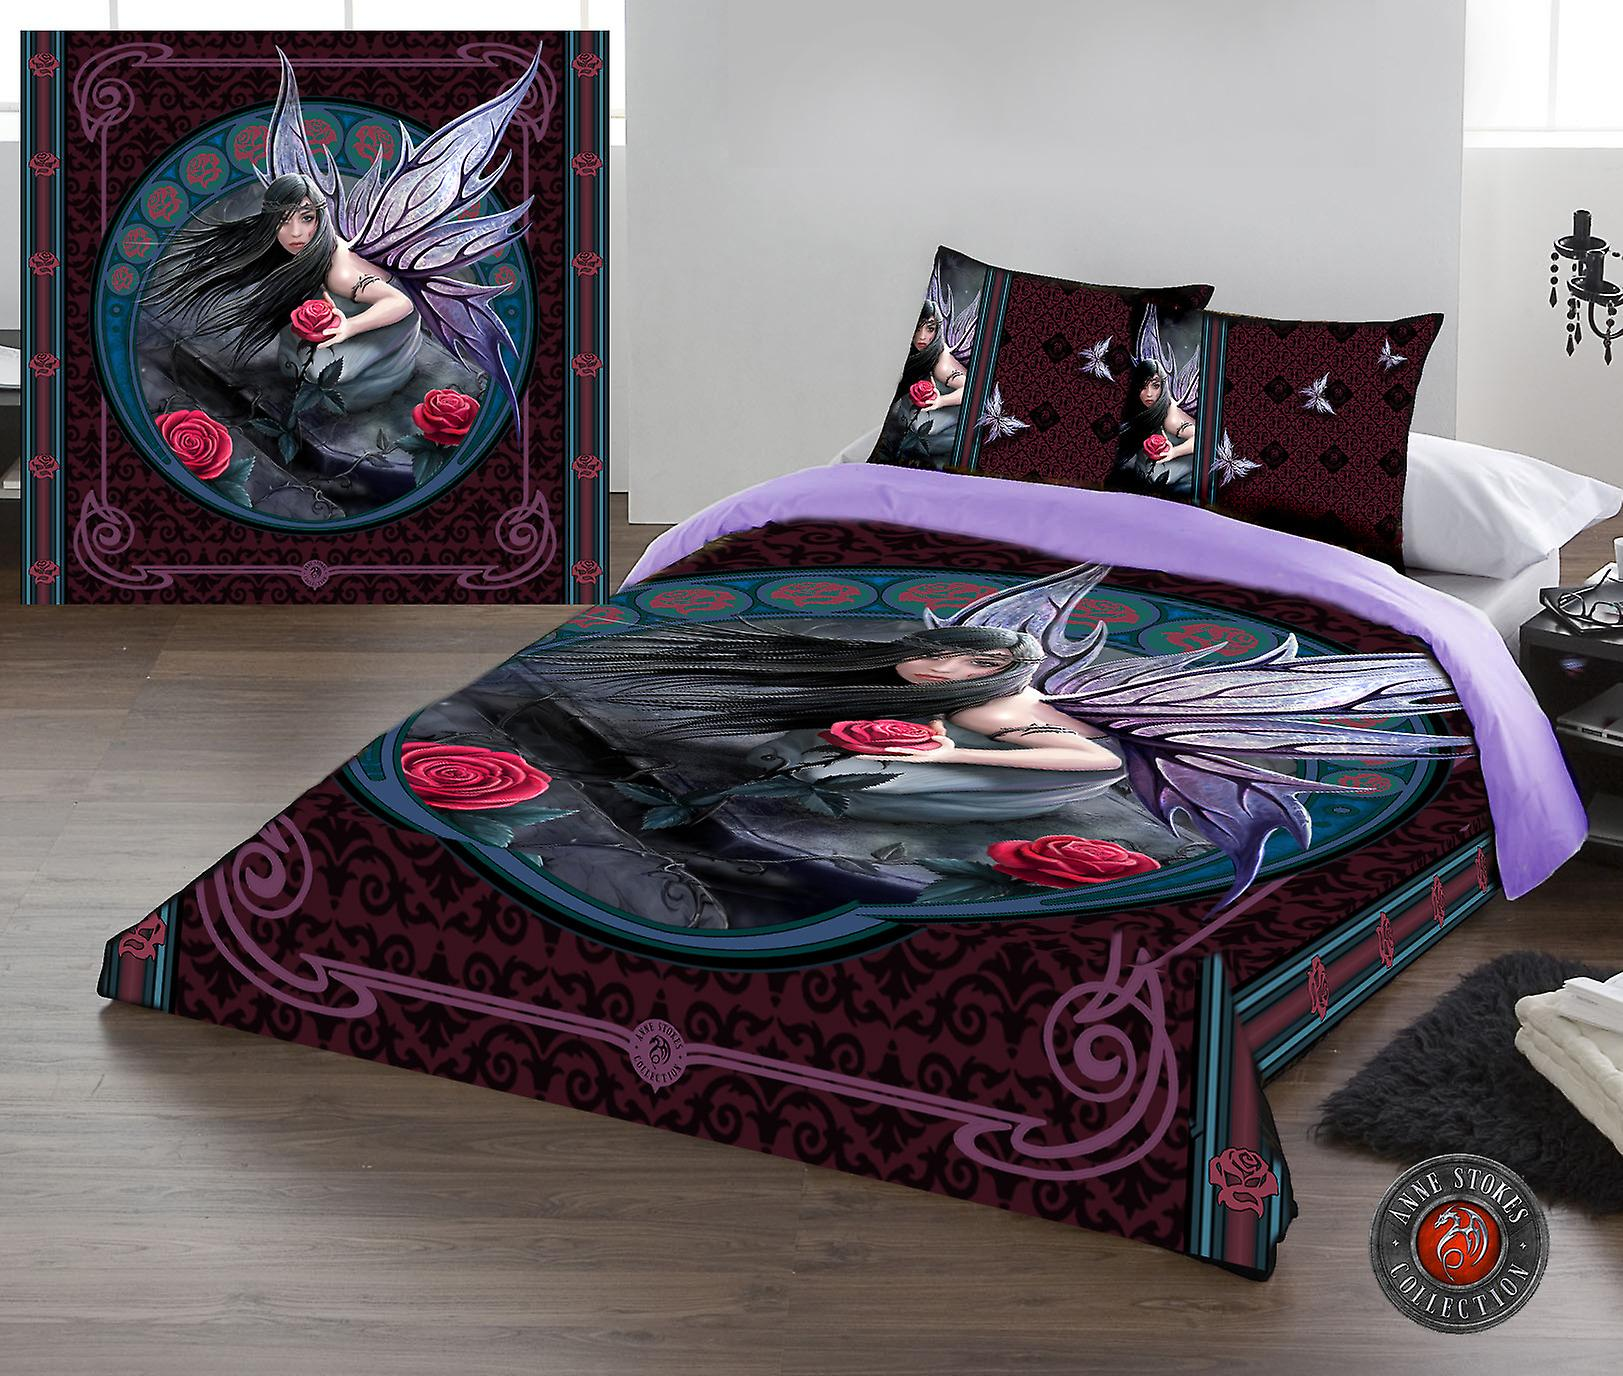 Rose Fairy Nouveau Duvet Covers Set Uk King Us Queensize Fruugo